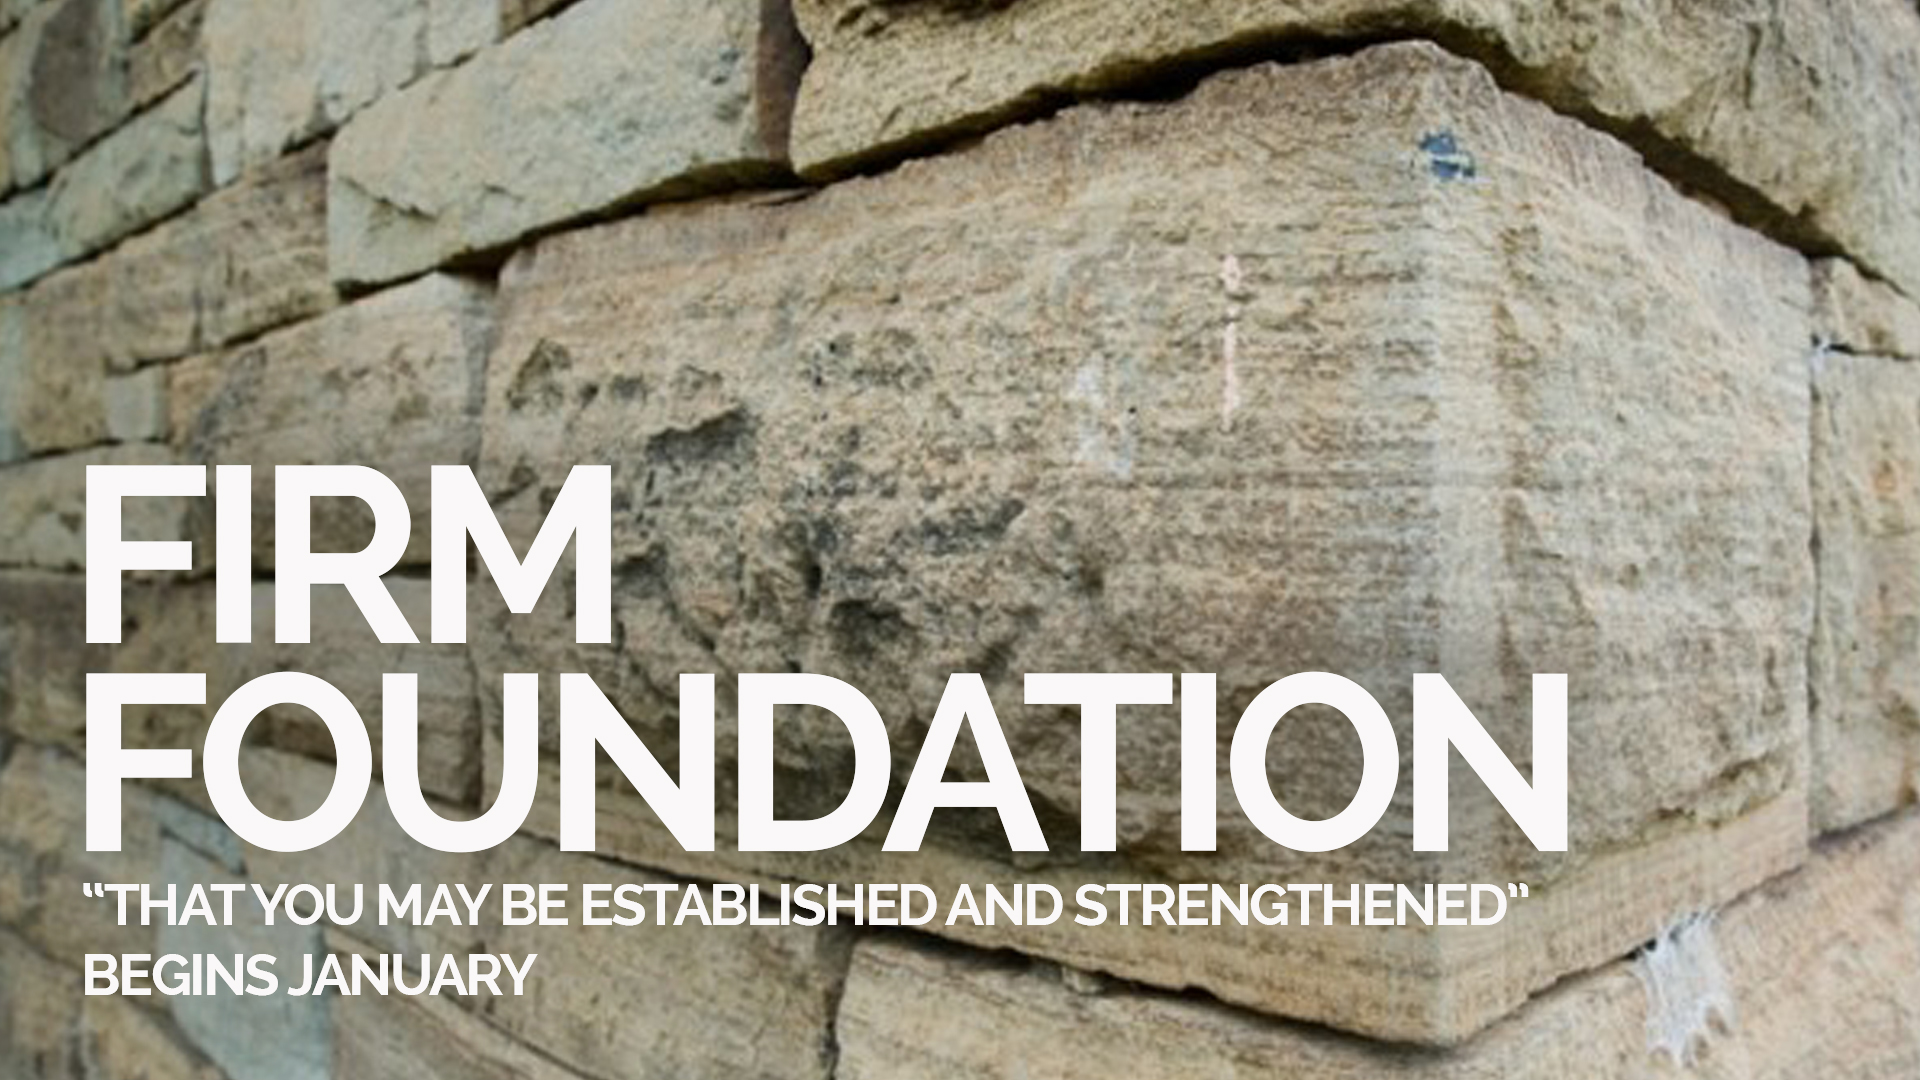 Firm foundation announce